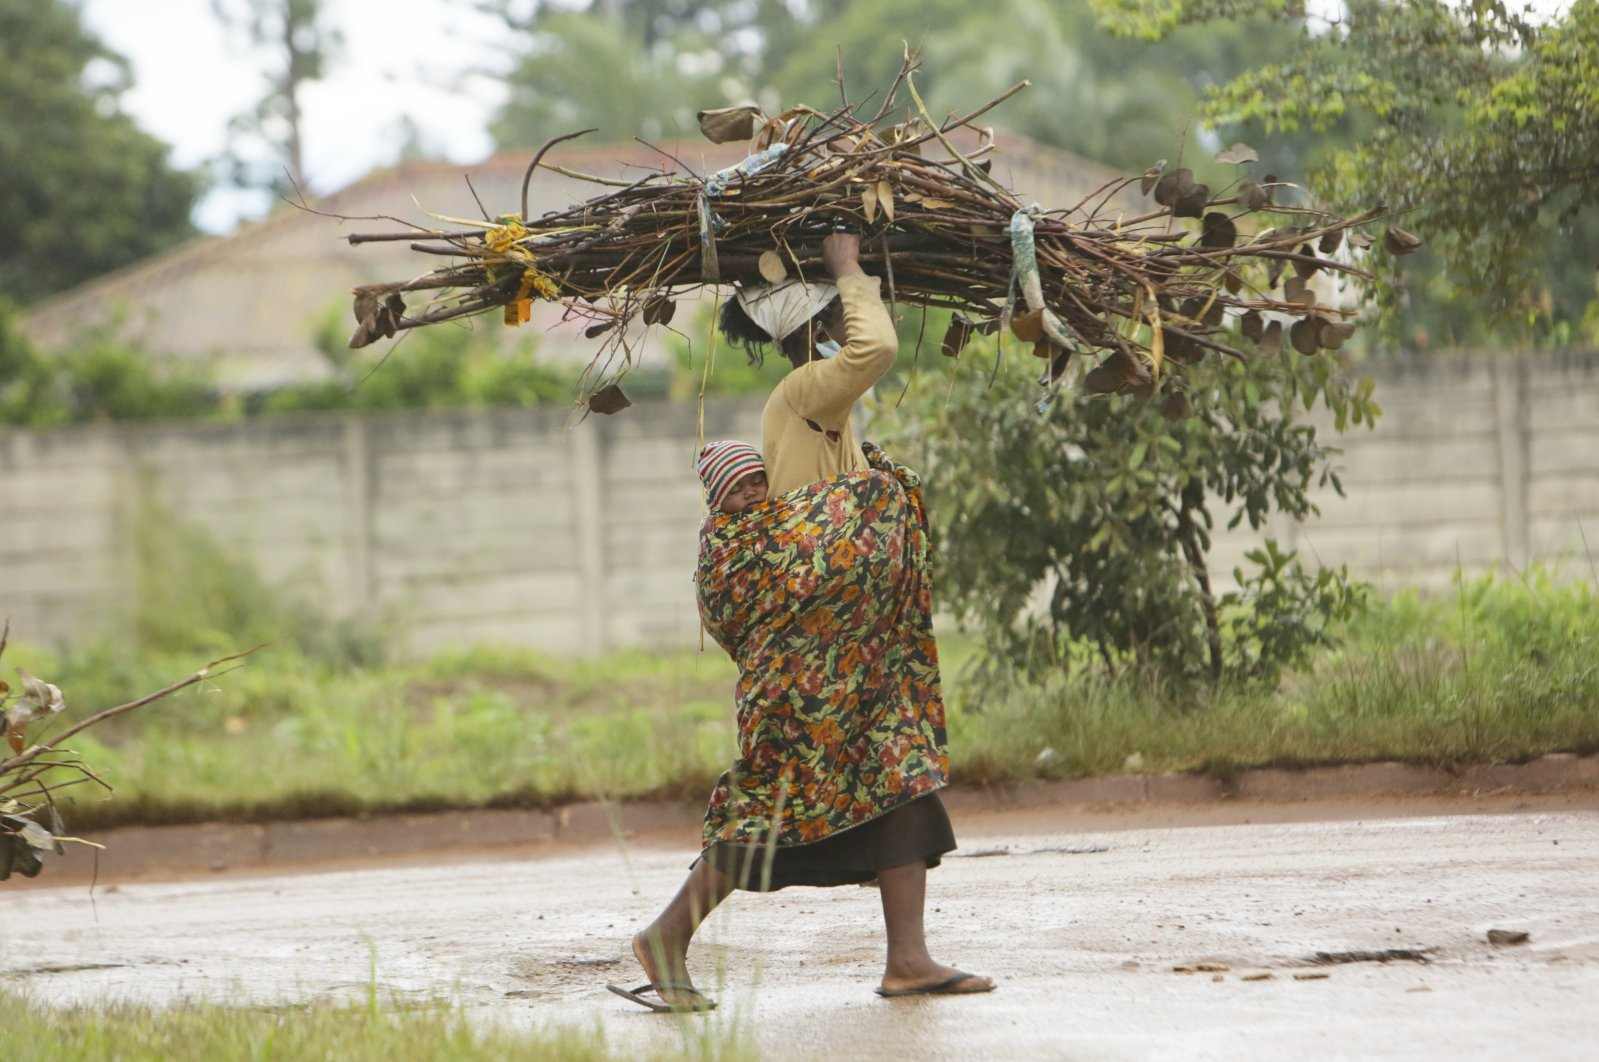 A woman with a baby strapped on her back carries firewood for cooking on the streets of Harare, March 2, 2021. (AP Photo)